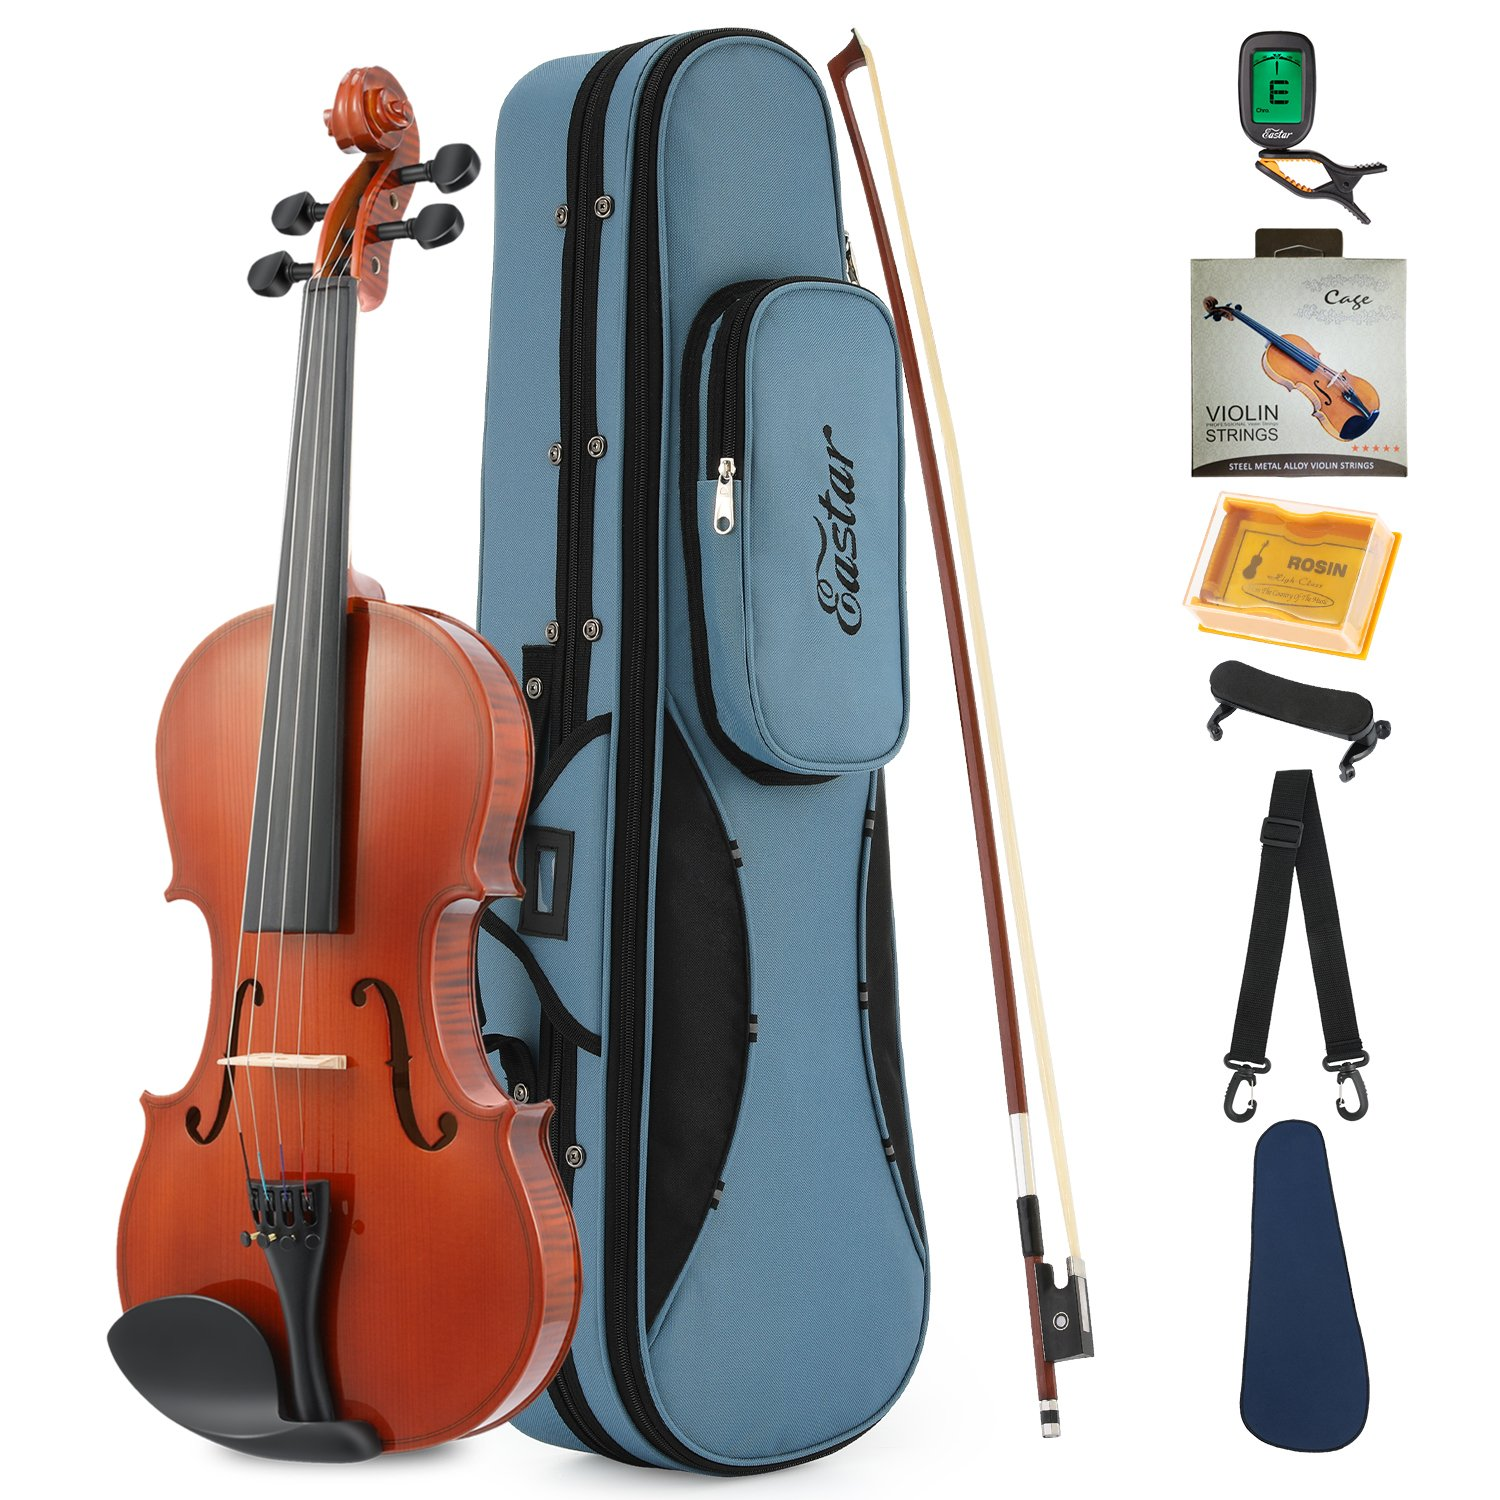 Eastar EVA-1 1/2 Natural Violin Set For Beginner Student with Hard Case, Rosin, Shoulder Rest, Bow, Clip-on Tuner and Extra Strings